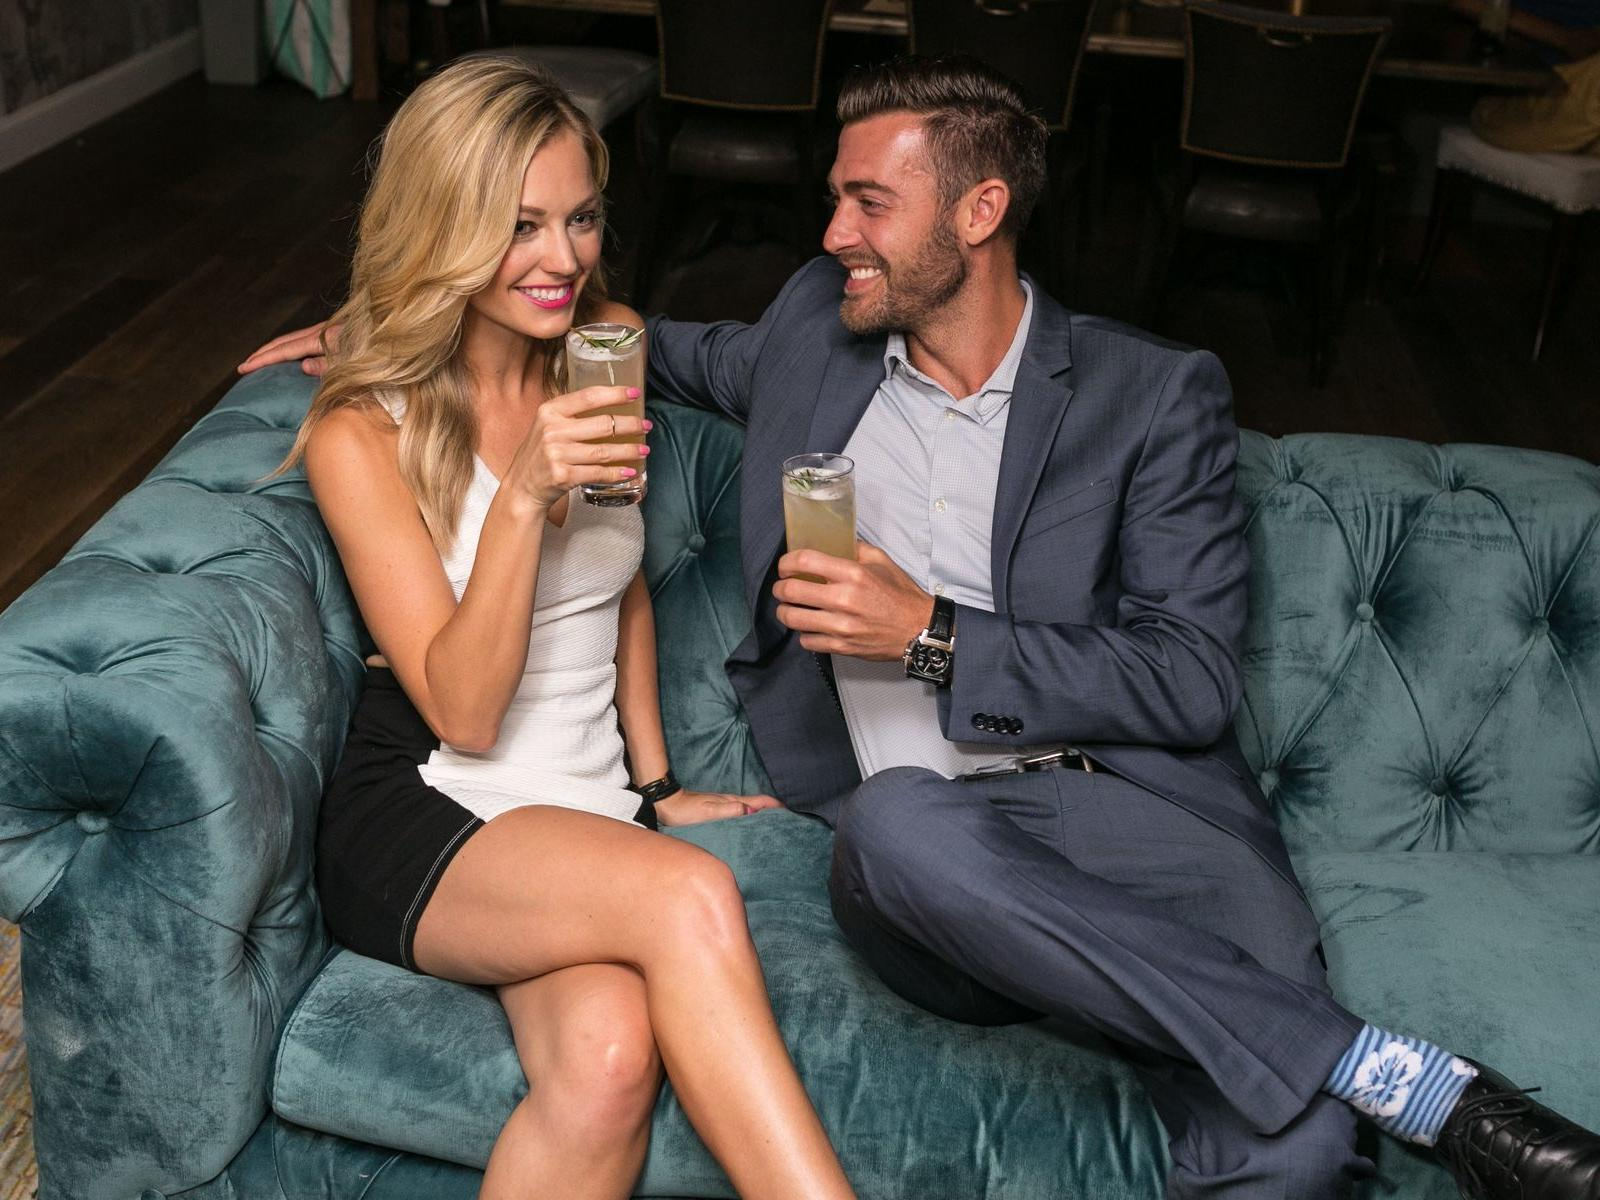 couple with cocktails on couch